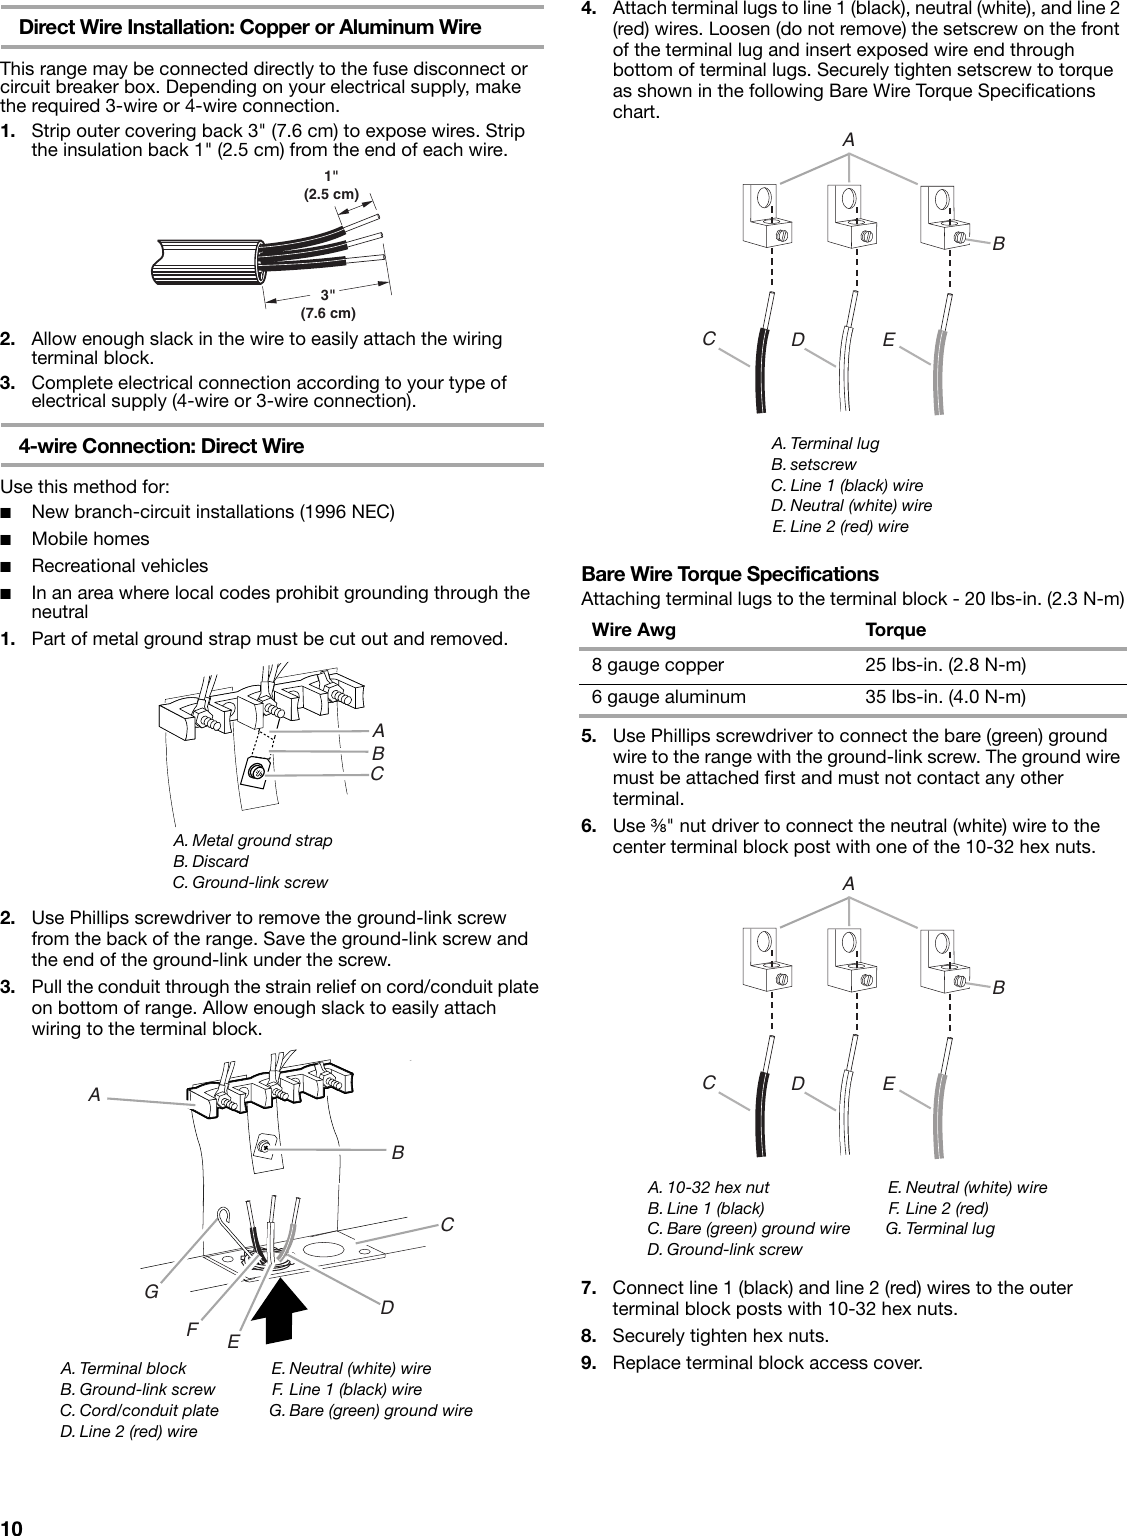 Amana Aep222vaw Installation Instructions Wiring Nuts Page 10 Of 12